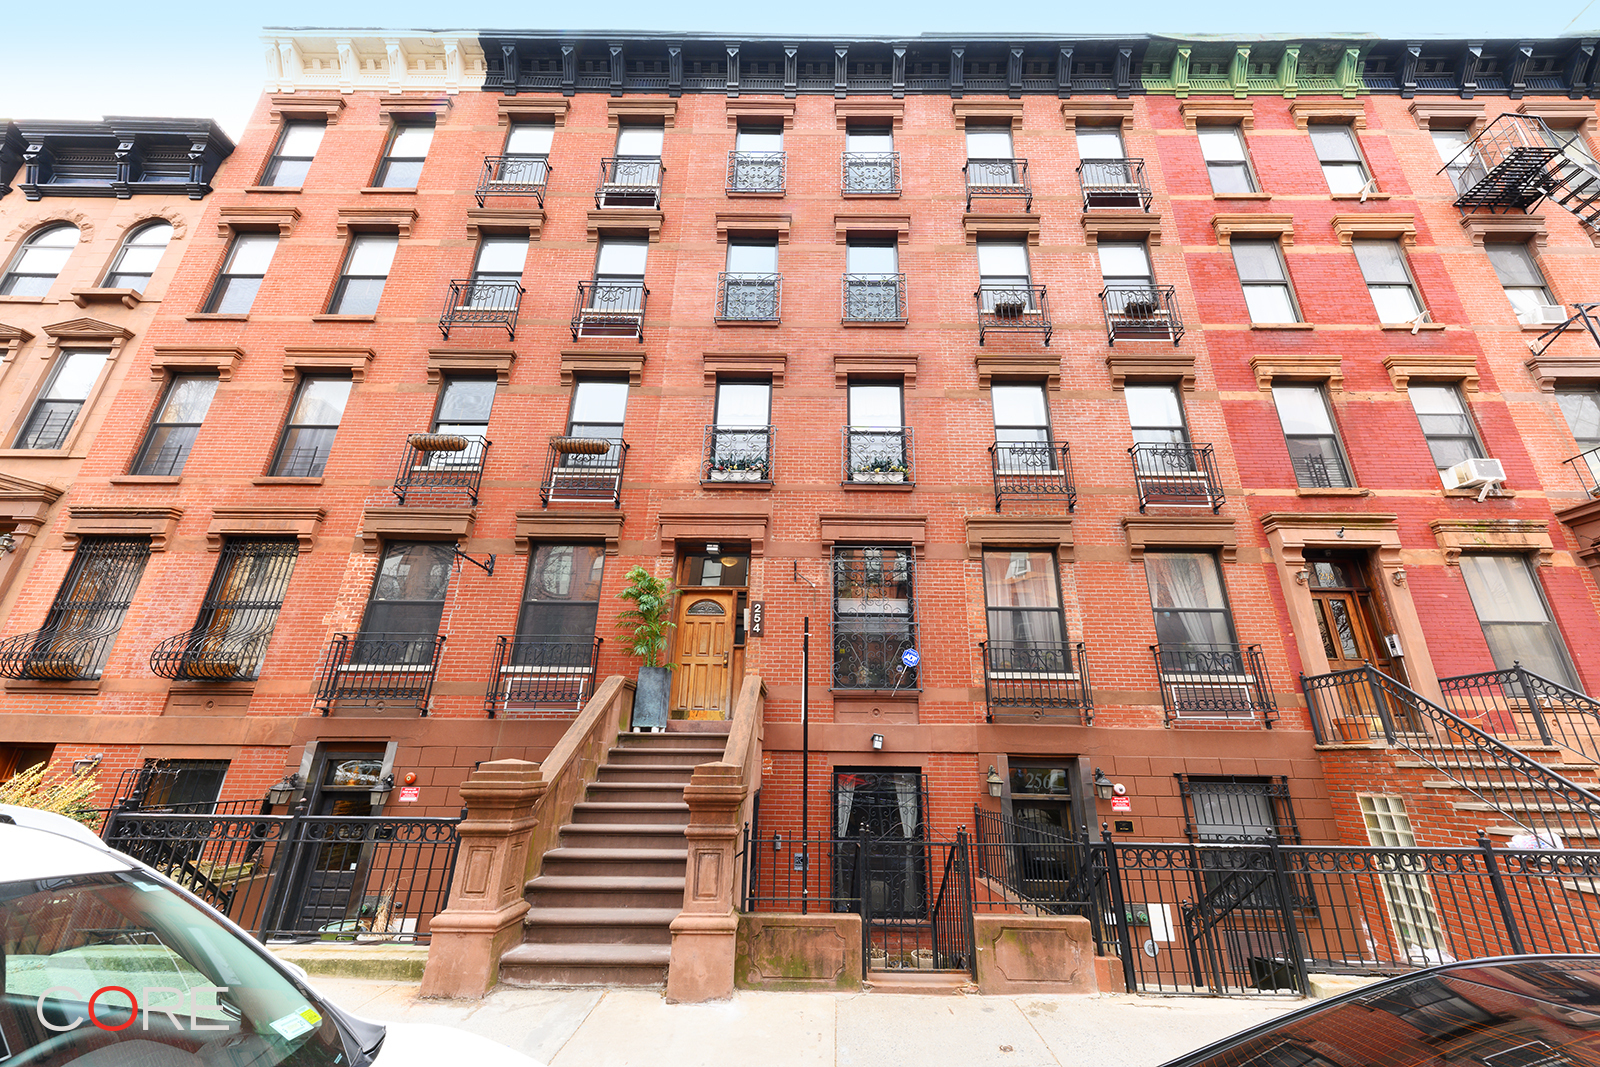 Please copy this URL to view a 3D tour:  https://my.matterport.com/show/?m=KyDmzqVXLMK&mls=1    Enjoy quintessential townhouse living at this boutique, three-unit condominium in prime Harlem.  Units 1 & 2 can be an approximately 4,000 SF home with up to seven bedrooms, six bathrooms, and five private outdoor spaces.  Pre-war details and your architect's thoughtful design can come together to create a welcoming and unique home. With three wood-burning fireplaces, three balconies and a private back yard, this quiet urban oasis offers ample indoor and outdoor living, dining, entertaining and relaxing space.  Choose from two complete chef's kitchens with oversized islands, stainless steel appliances from Wolf, Bosch, and LG, and seemingly endless counter space and storage.   Open-concept living areas off each of the two entries, as well as six bedrooms on the top three levels, provide flexible options for one or more master bedrooms, guest rooms, home offices, and academic pods.  The lower level's floor-through space includes an additional bedroom with a full bathroom, two living areas, additional storage, and access to the private, landscaped back yard.  Two in-home laundry centers with full-size washers and gas vented dryers, central heat and A/C, a security system, video intercom, and storage complete this spacious combination home.  Low common charges are $825 for both homes which also enjoy a J-51 tax abatement.  254 West 123rd Street is a charming three-unit, well-maintained condominium, located on a tree-lined street just around the corner from Frederick Douglass Boulevard and close to Harlem's parks and green spaces. The building is within close distance to multiple transportation options including parking garages, the A,B,C,D subway express stop at 125th Street, the 2/3 subway on Lenox Avenue, 125th Street's crosstown buses, the M10 bus on Frederick Douglass Boulevard, Citi Bike, and Revel mopeds.  Private virtual tours are available as well as private showings, by appointment seven days.  Units 1 and 2 are listed for sale separately. This is a marketing co-exclusive with Compass.